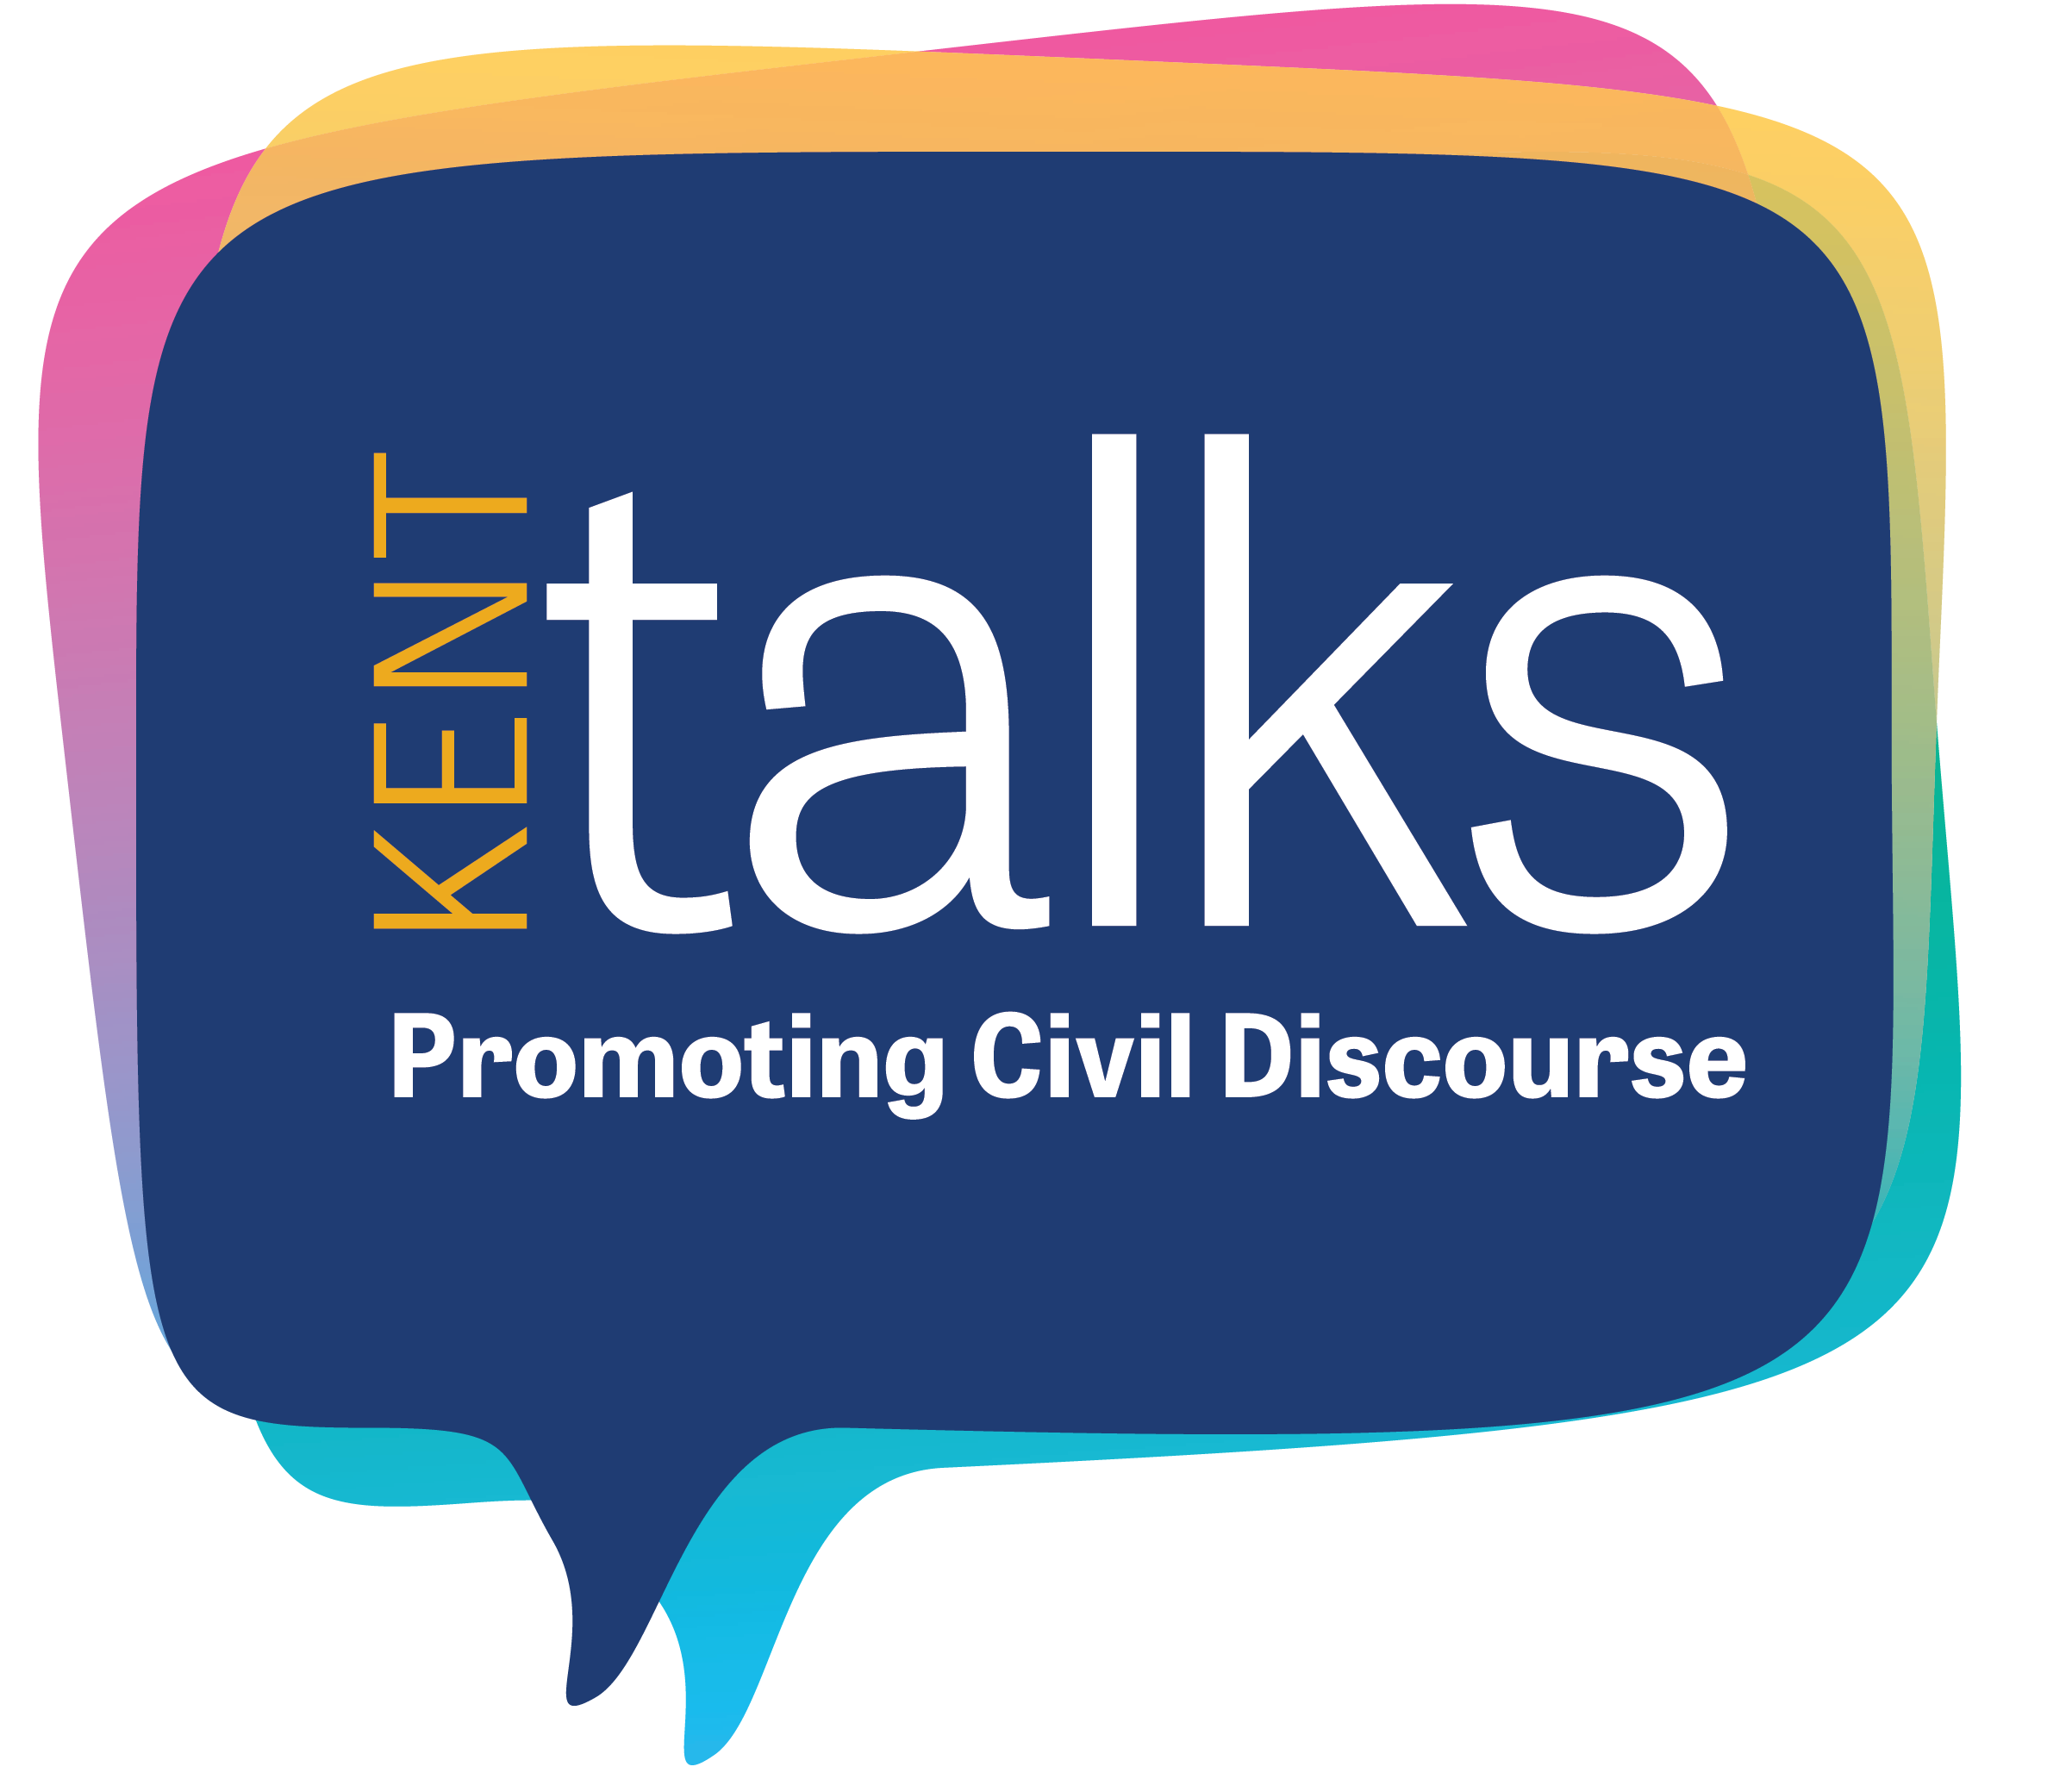 Kent Talks Promoting Civil Discourse